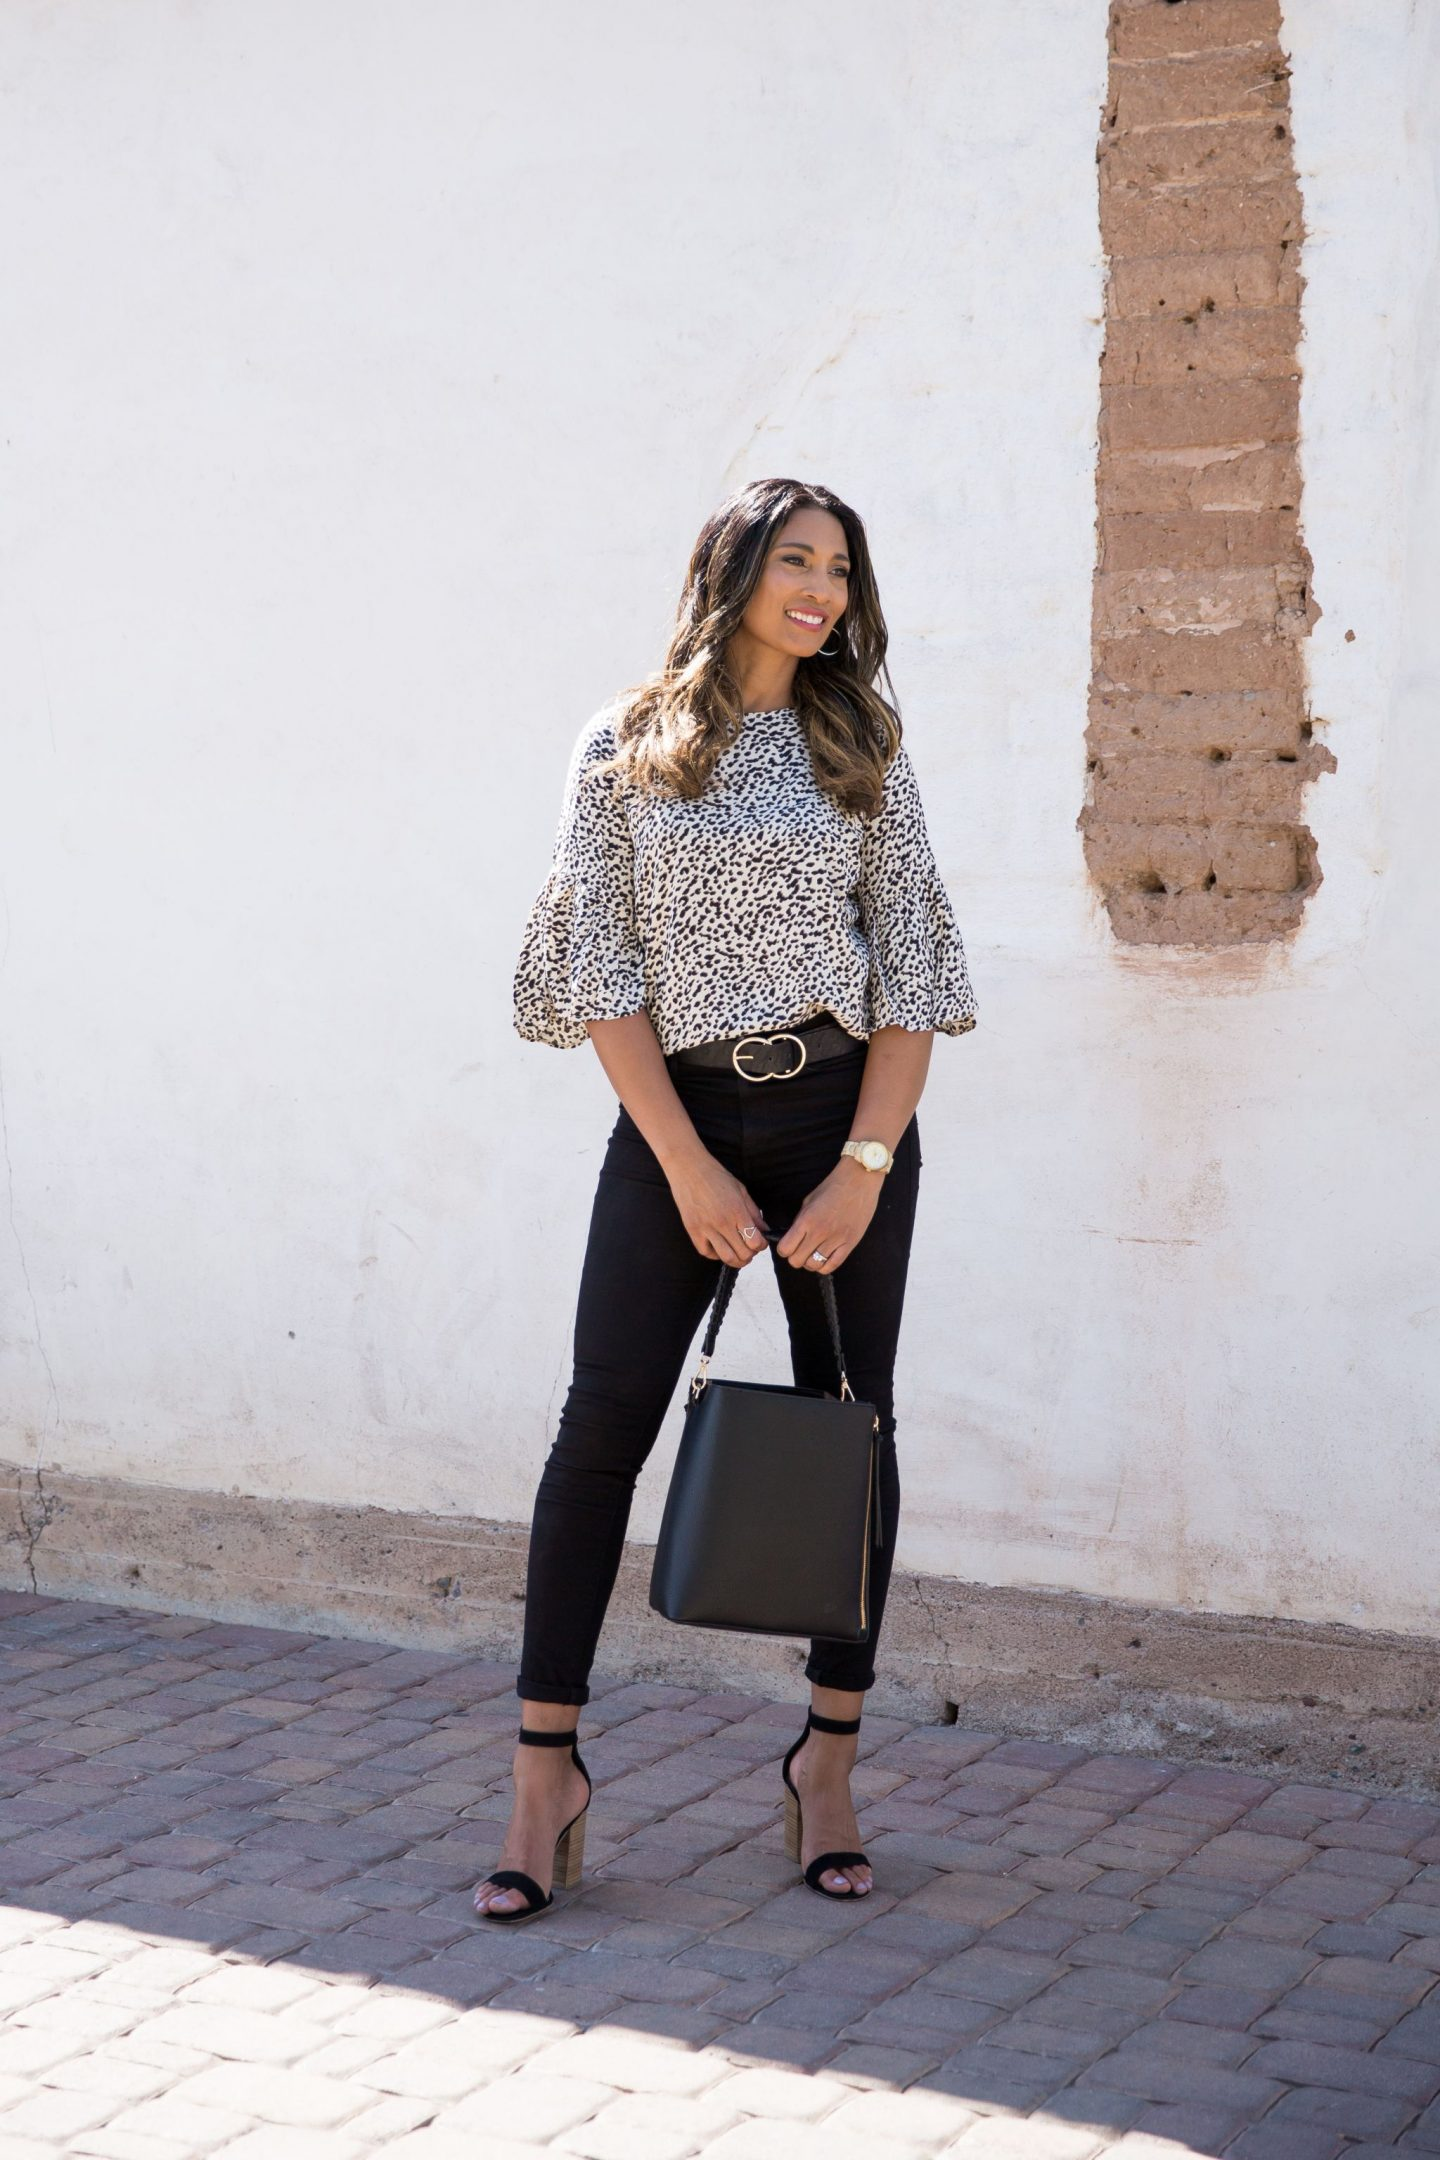 CHEETAH PRINT, WORK BLOUSE, OUTFIT INSPO, CASUAL LOOK, FALL FASHION, FALL LOOK, FALL STYLE